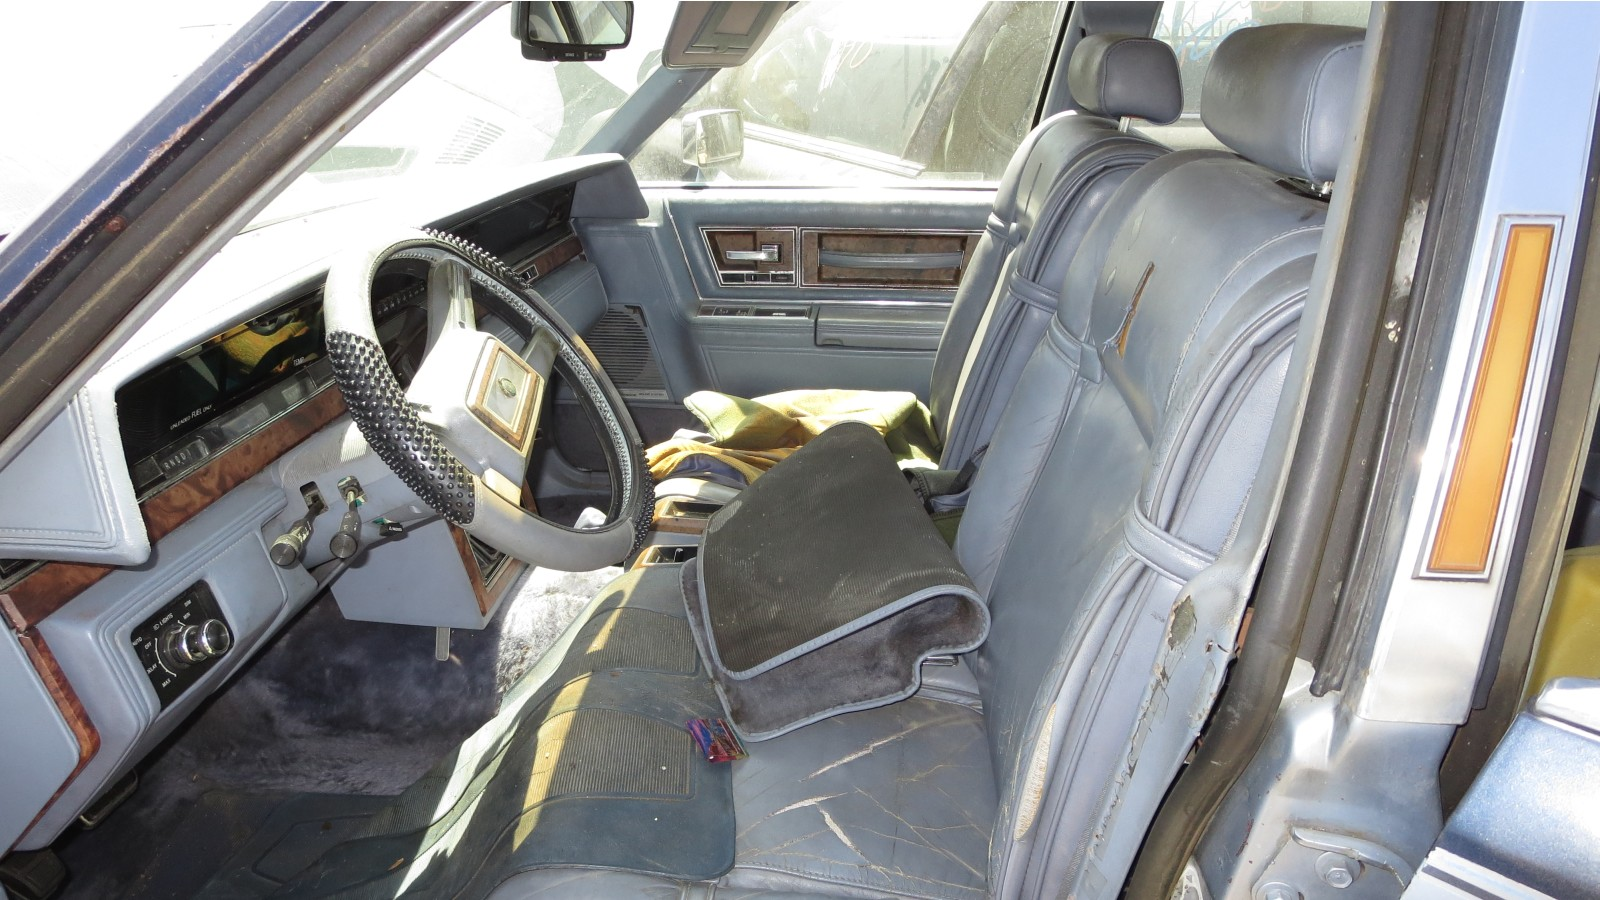 1983 Lincoln Continental Junkyard Find Wiring Diagram Auto Reverse Was A Futuristic Option On Cassette Decks